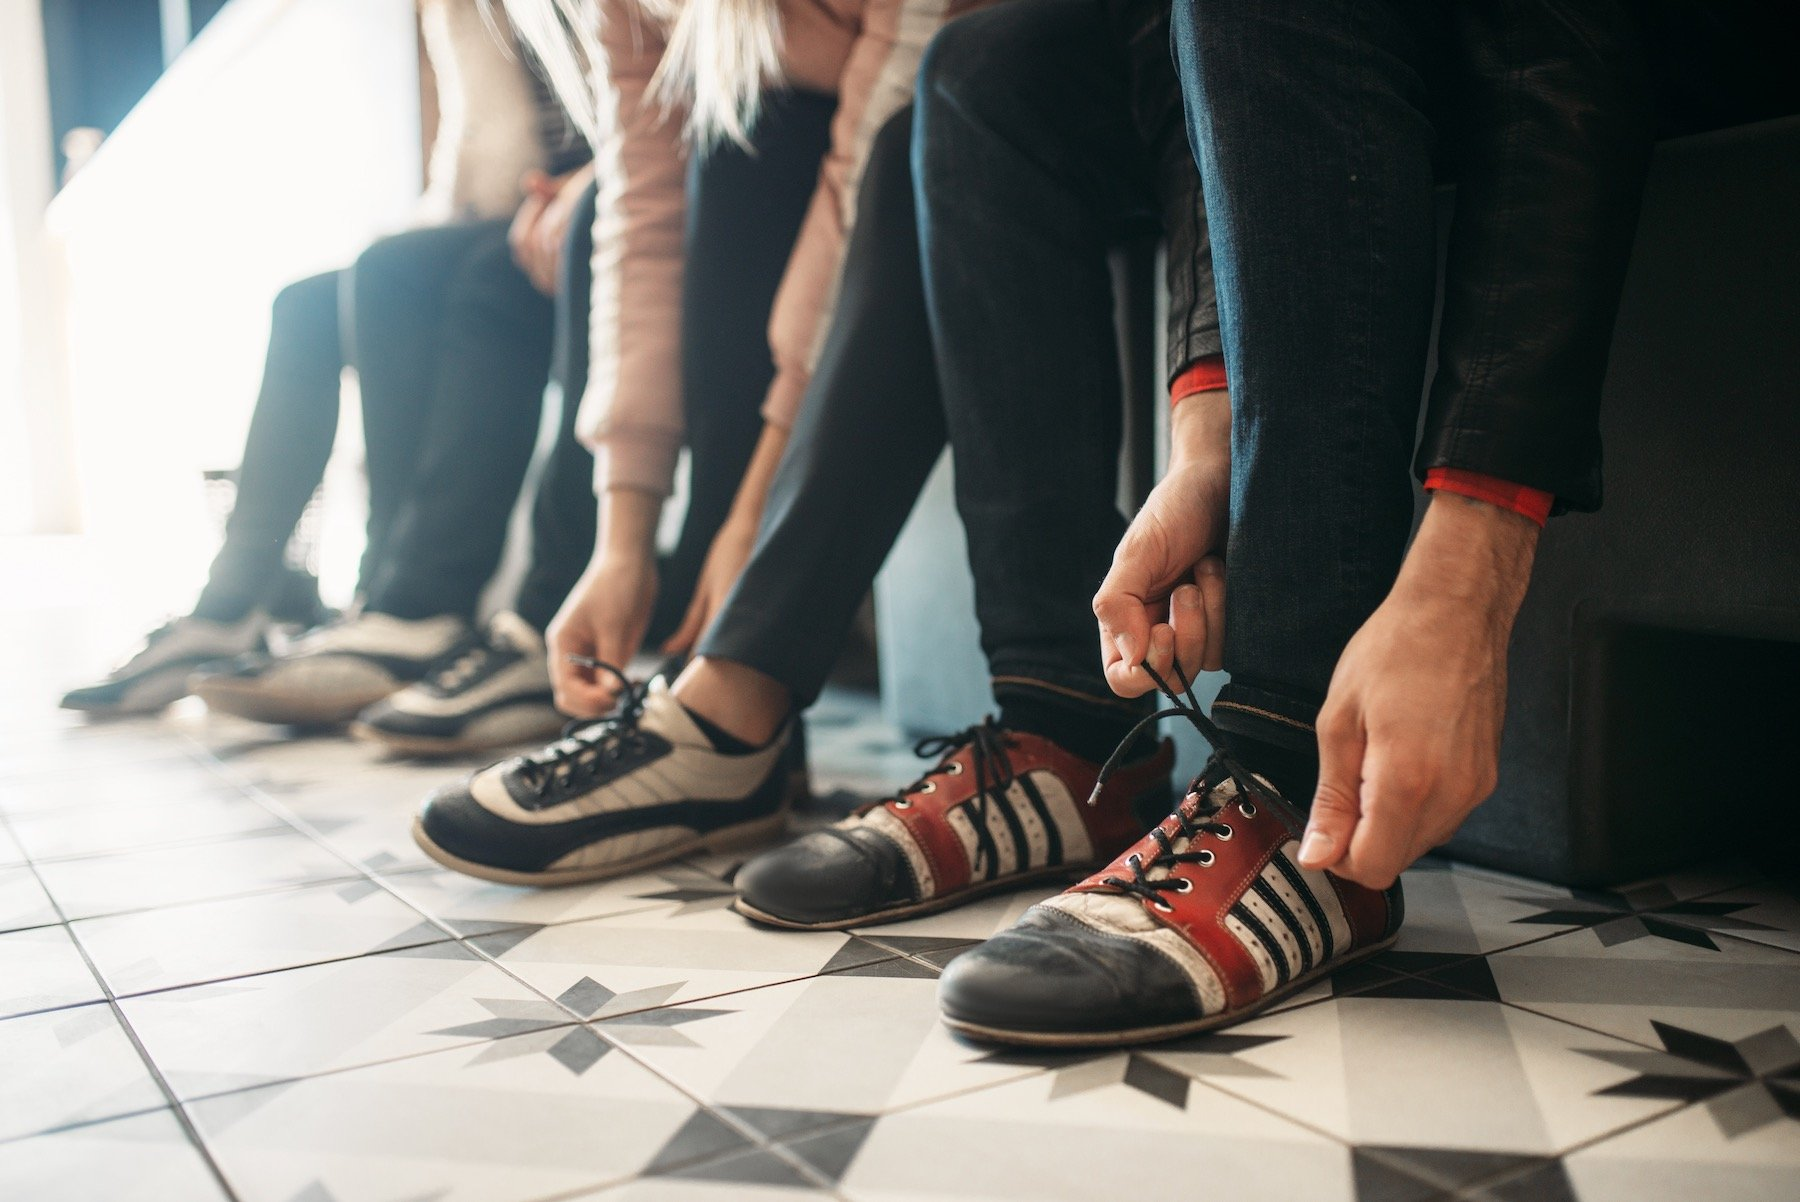 Bowlers sharing shoes have an increased risk of plantar warts